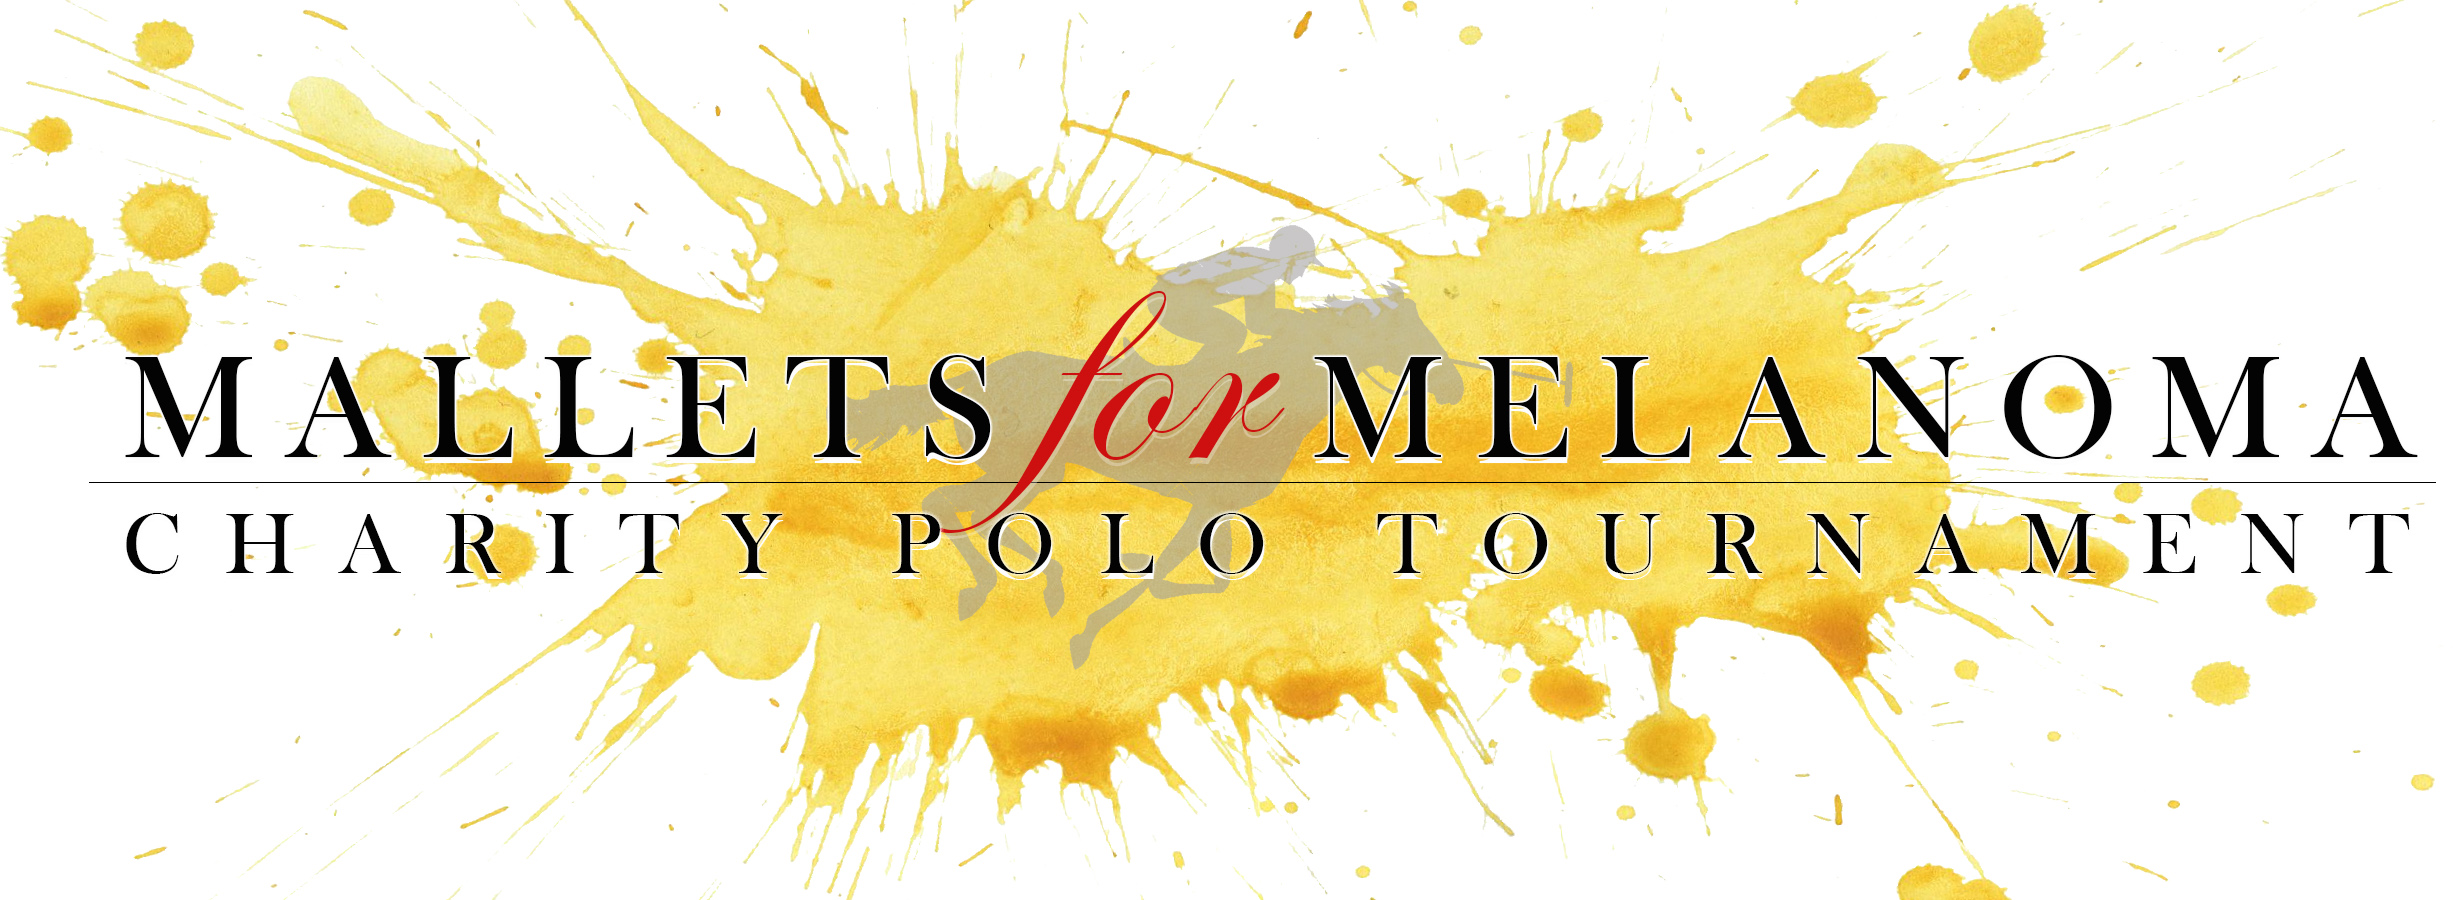 charity events polo tournament